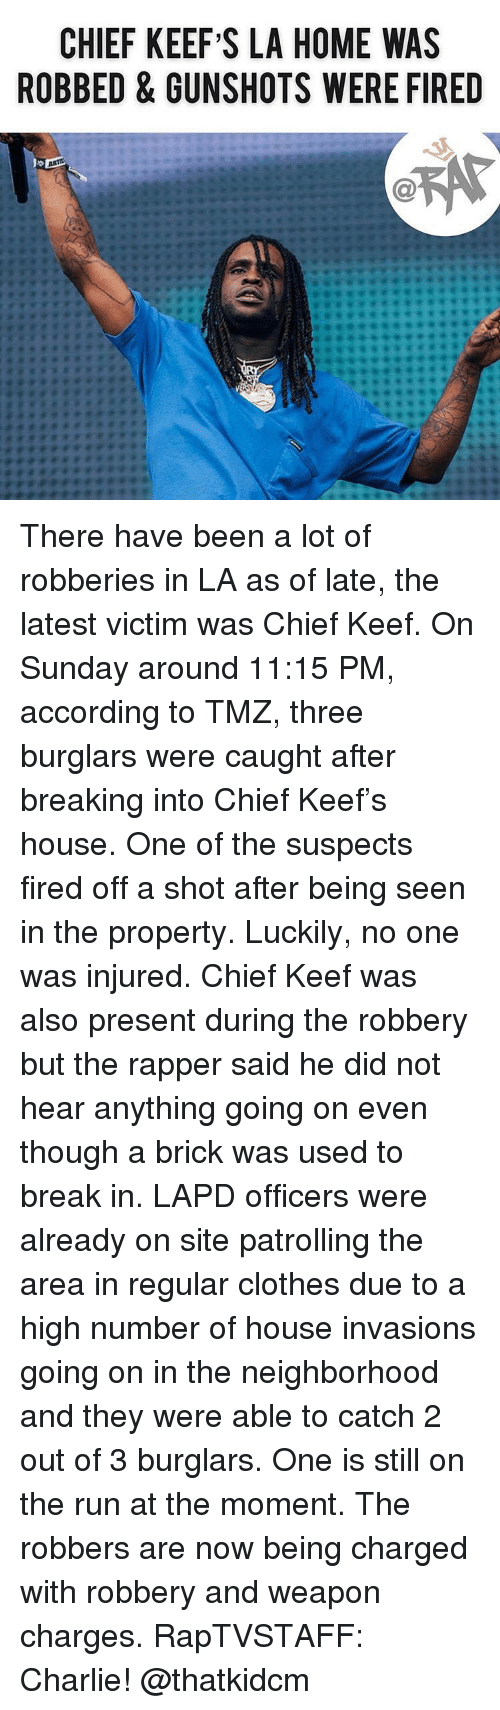 Charlie, Chief Keef, and Clothes: CHIEF KEEF S LA HOME WAS  ROBBED & GUNSHOTS WERE FIRED There have been a lot of robberies in LA as of late, the latest victim was Chief Keef. On Sunday around 11:15 PM, according to TMZ, three burglars were caught after breaking into Chief Keef's house. One of the suspects fired off a shot after being seen in the property. Luckily, no one was injured. Chief Keef was also present during the robbery but the rapper said he did not hear anything going on even though a brick was used to break in. LAPD officers were already on site patrolling the area in regular clothes due to a high number of house invasions going on in the neighborhood and they were able to catch 2 out of 3 burglars. One is still on the run at the moment. The robbers are now being charged with robbery and weapon charges. RapTVSTAFF: Charlie! @thatkidcm